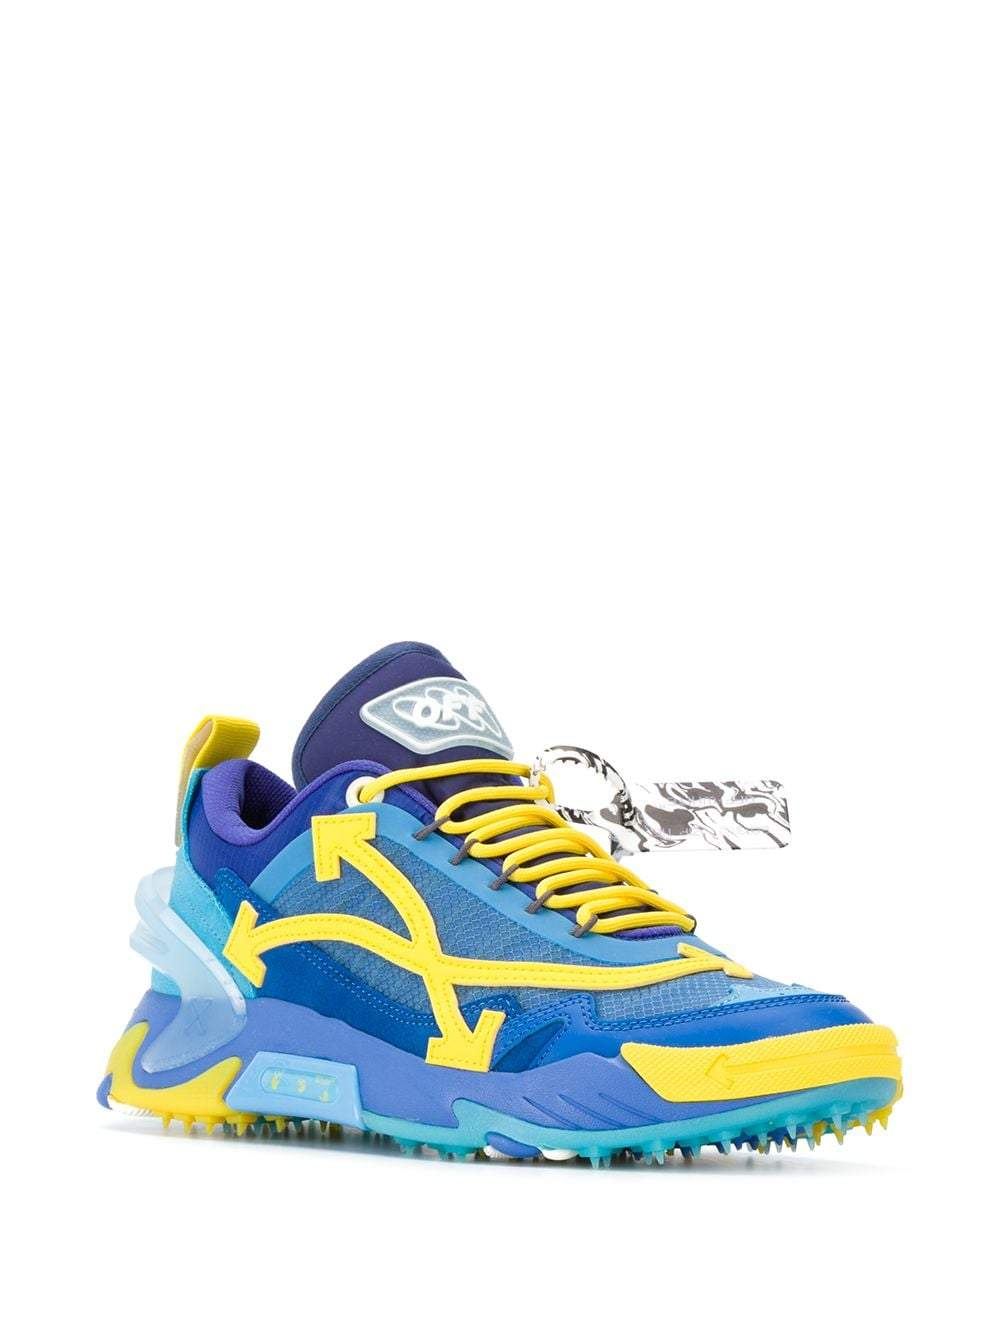 OFF-WHITE ODSY-2000 Sneakers Blue/Yellow